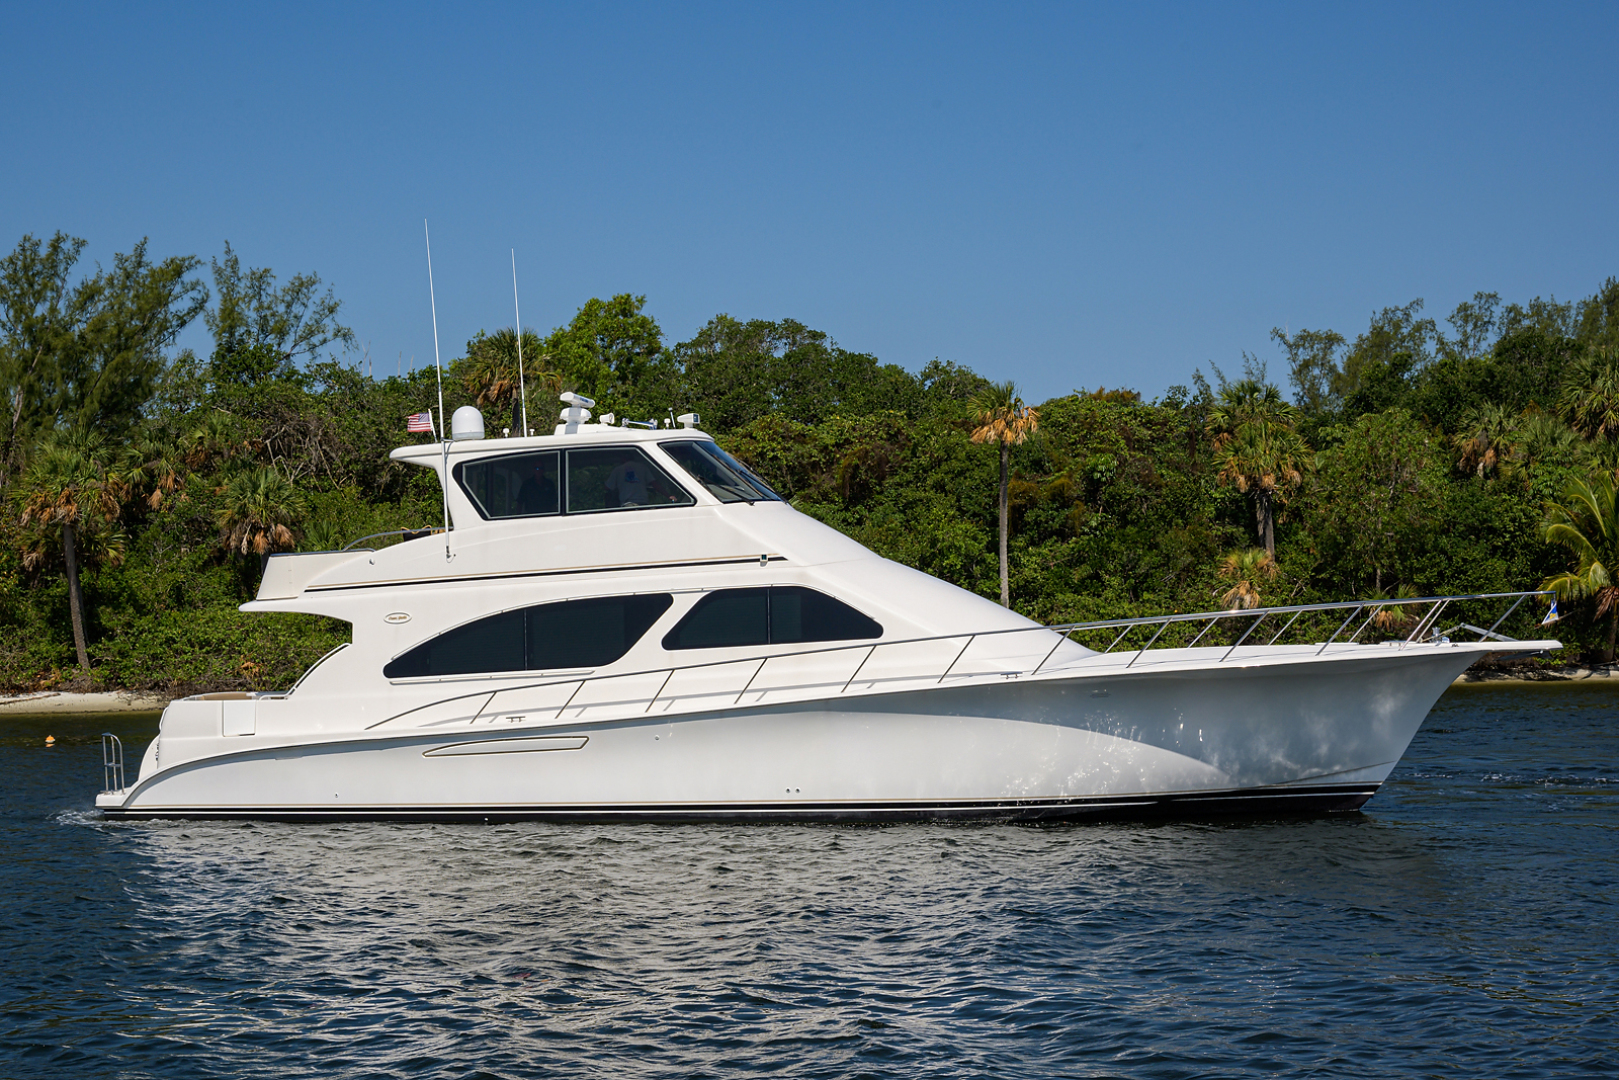 Ocean Yachts-Odyssey 2005-MISS JAN Palm Beach Gardens-Florida-United States-MISS JAN-1386893 | Thumbnail